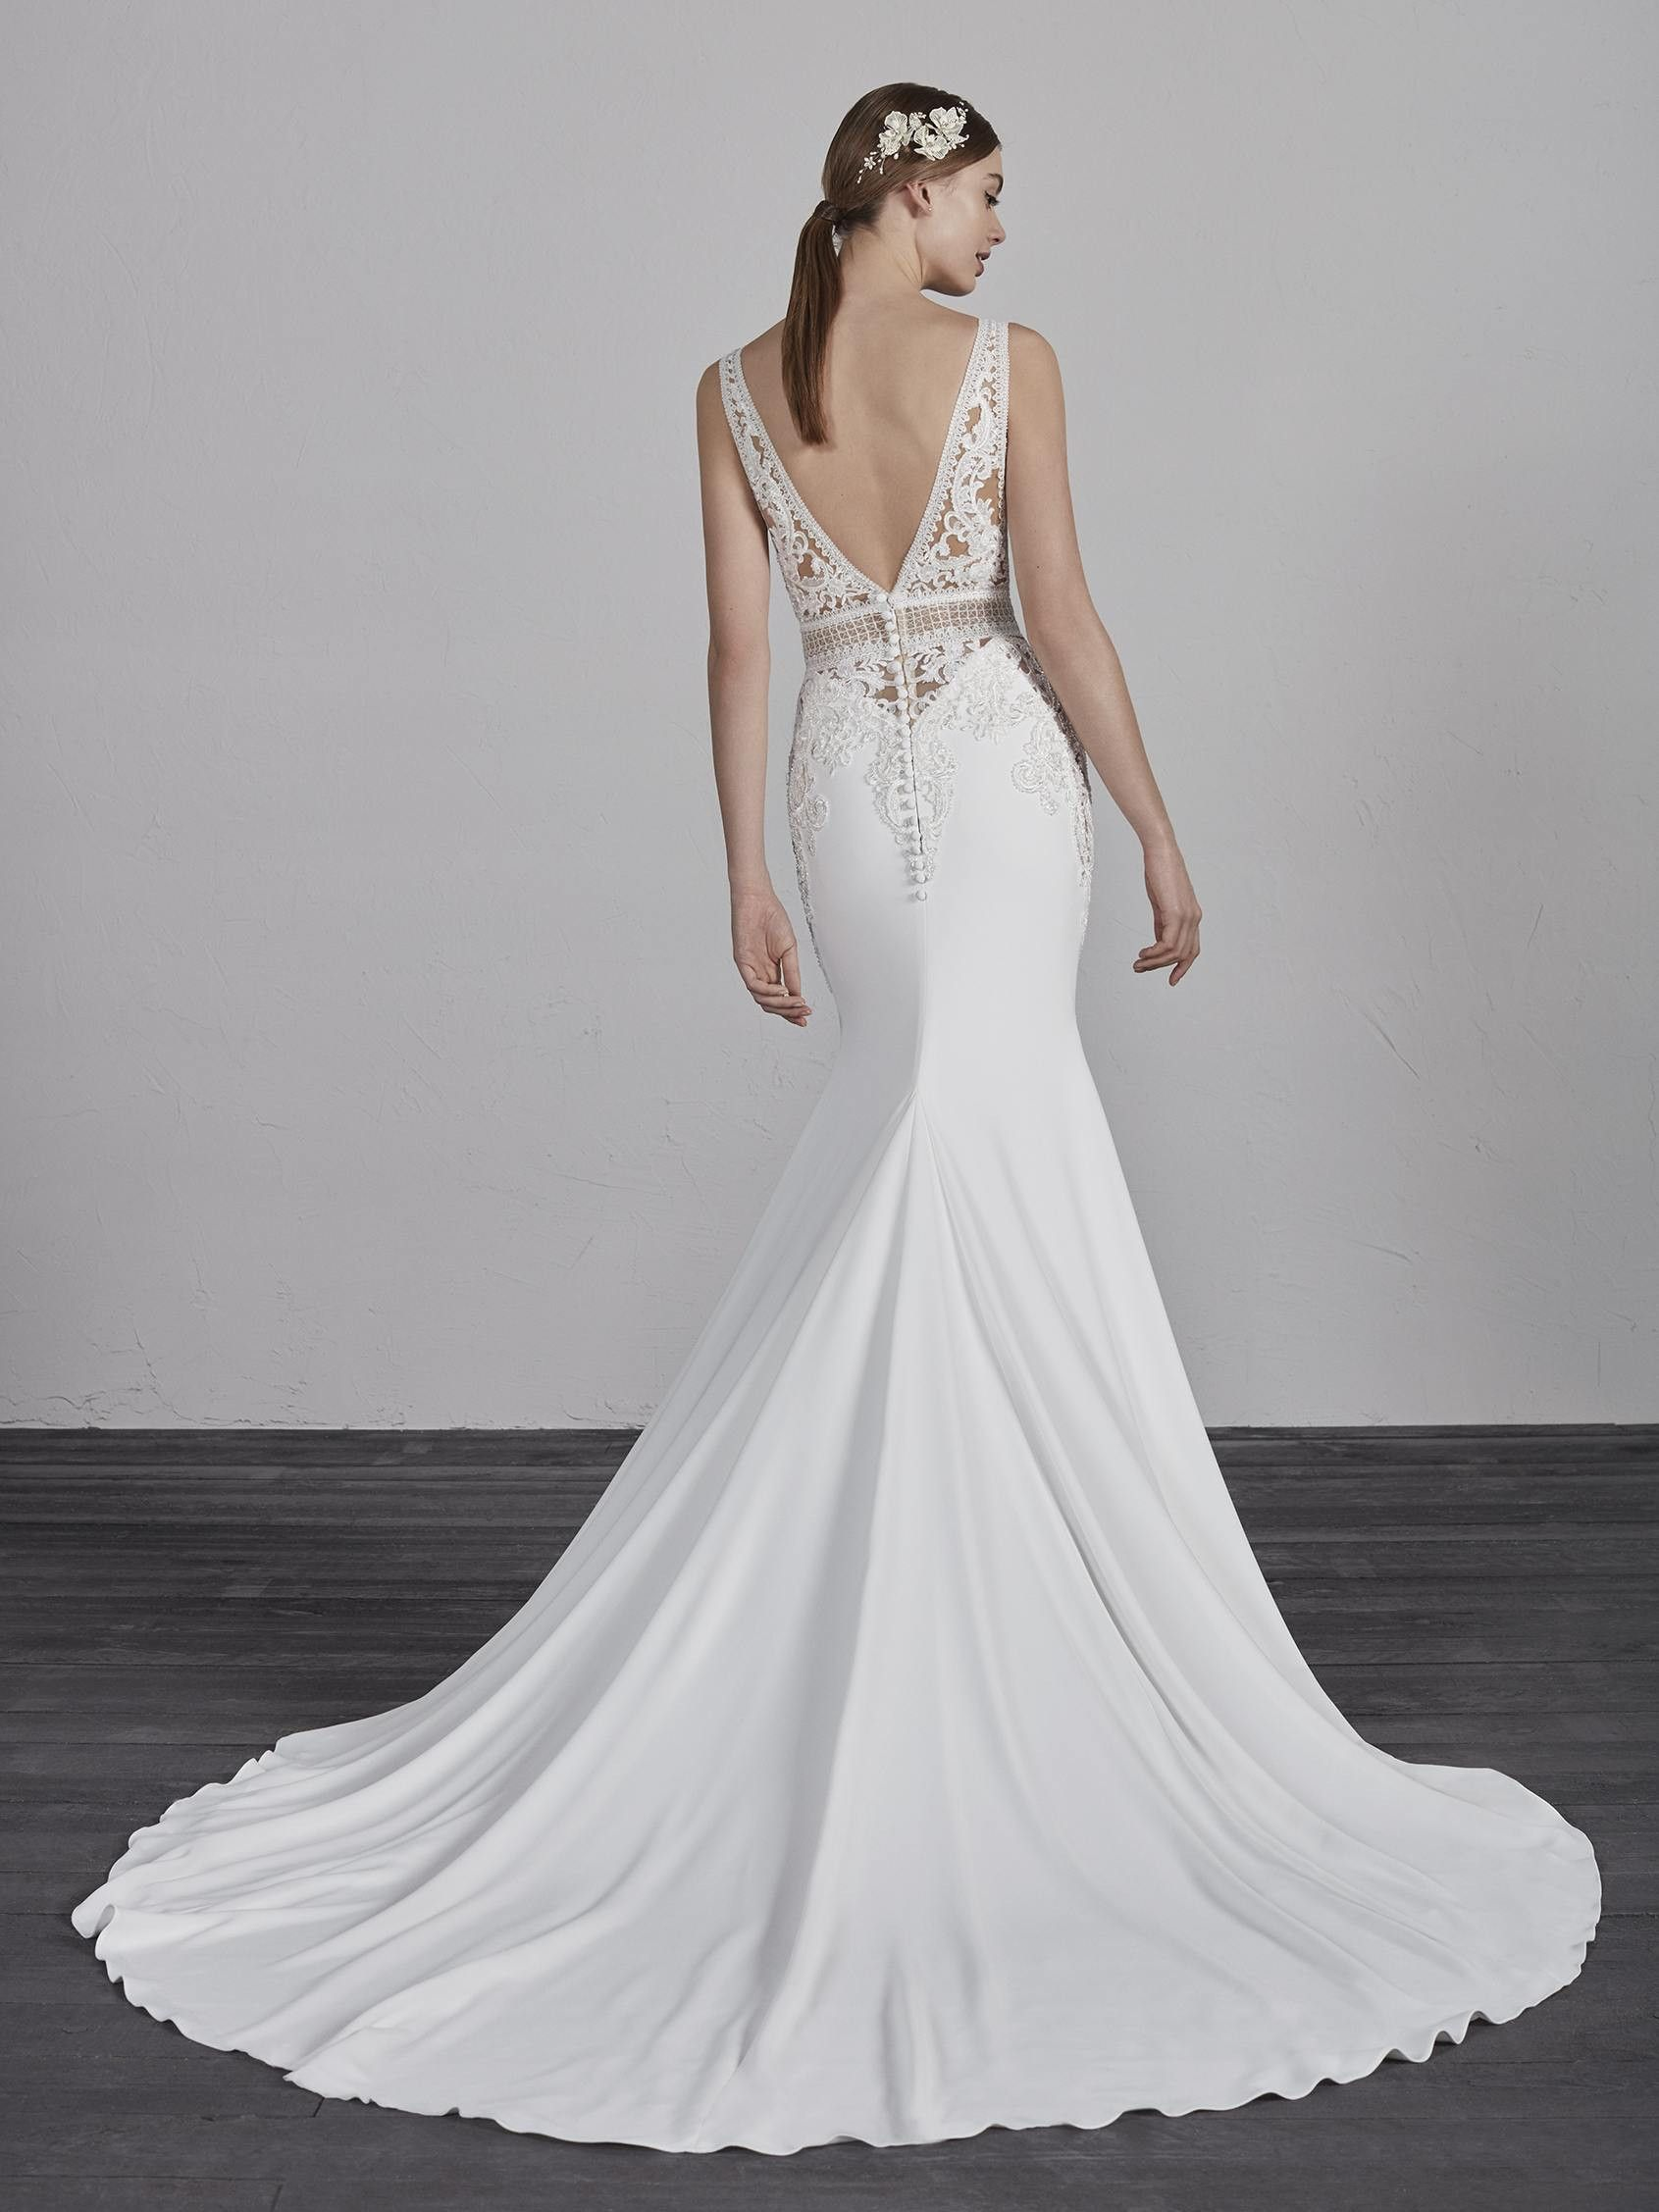 Try It On At Ellie S Bridal Boutique Alexandria Va Pronovias Emily Pronovias Wedding Dress Fit And Flare Wedding Dress Wedding Dresses Kleinfeld